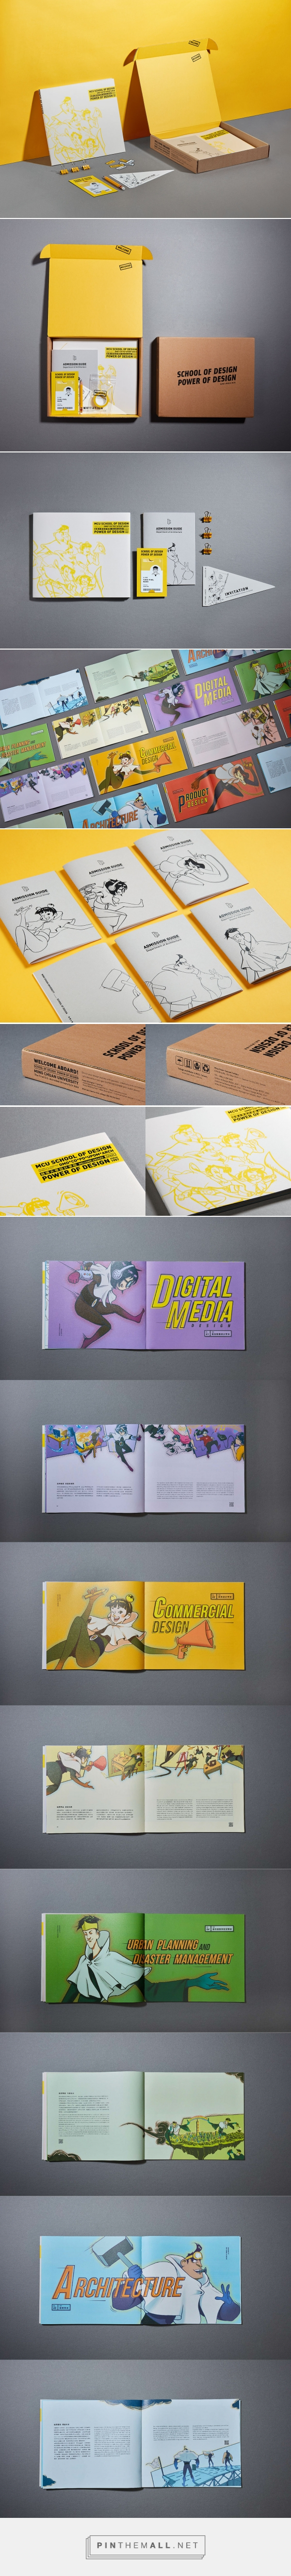 Welcome Kit-SCHOOL OF DESIGN POWER OF DESIGN on Behance... - a grouped images picture - Pin Them All